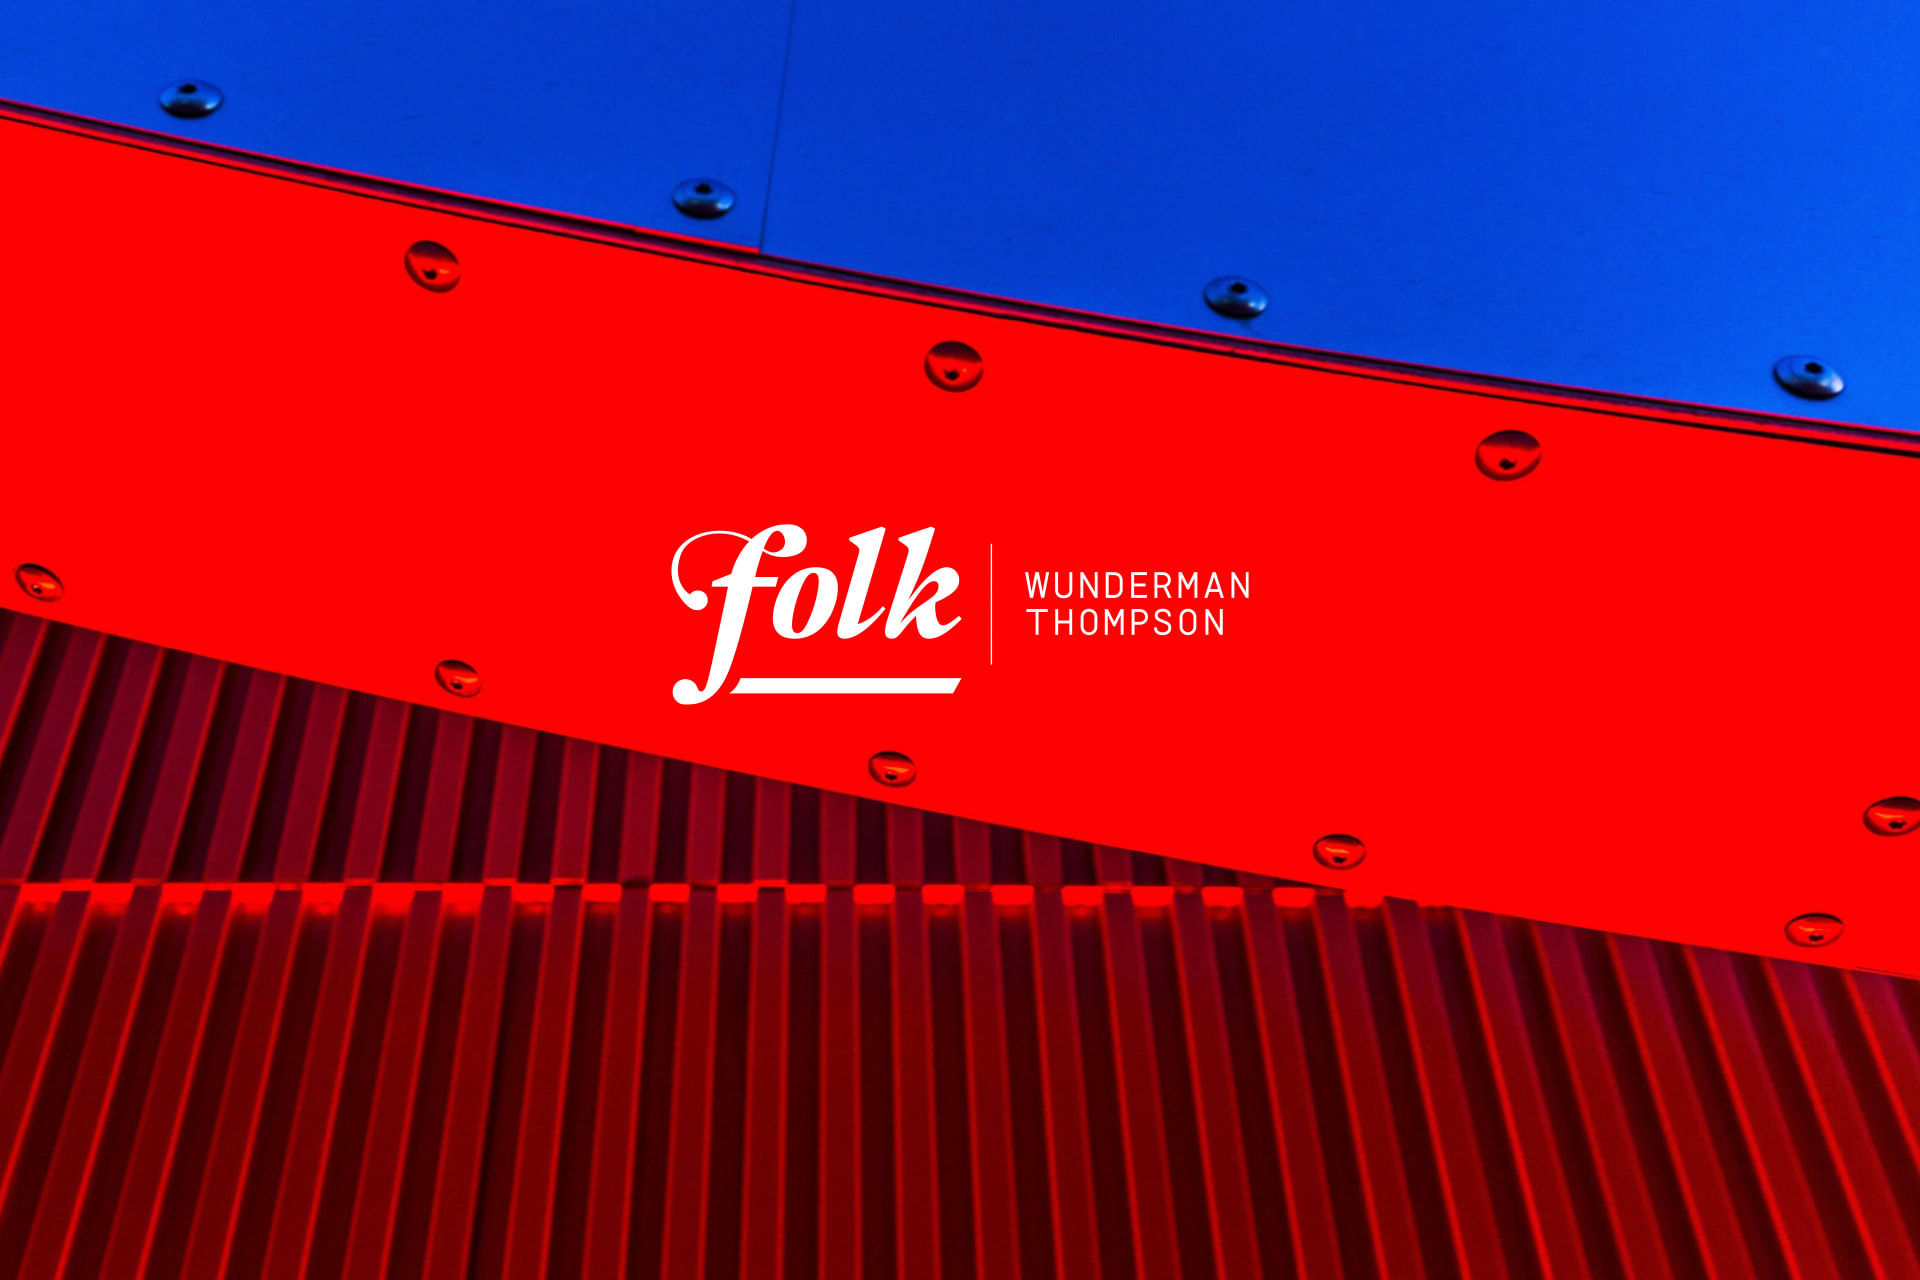 WT Folk logo on red and blue background